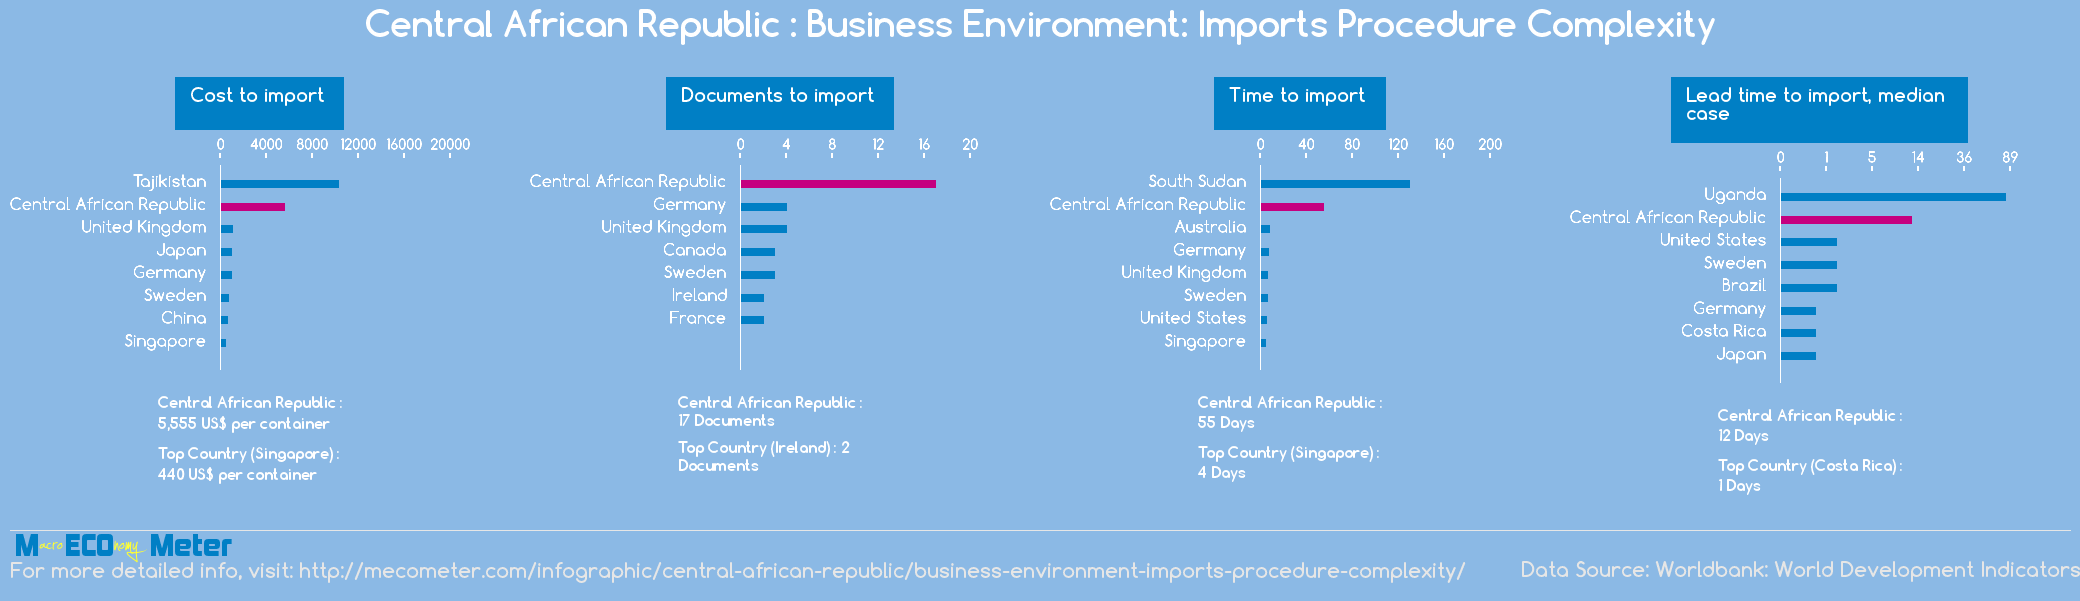 Central African Republic : Business Environment: Imports Procedure Complexity